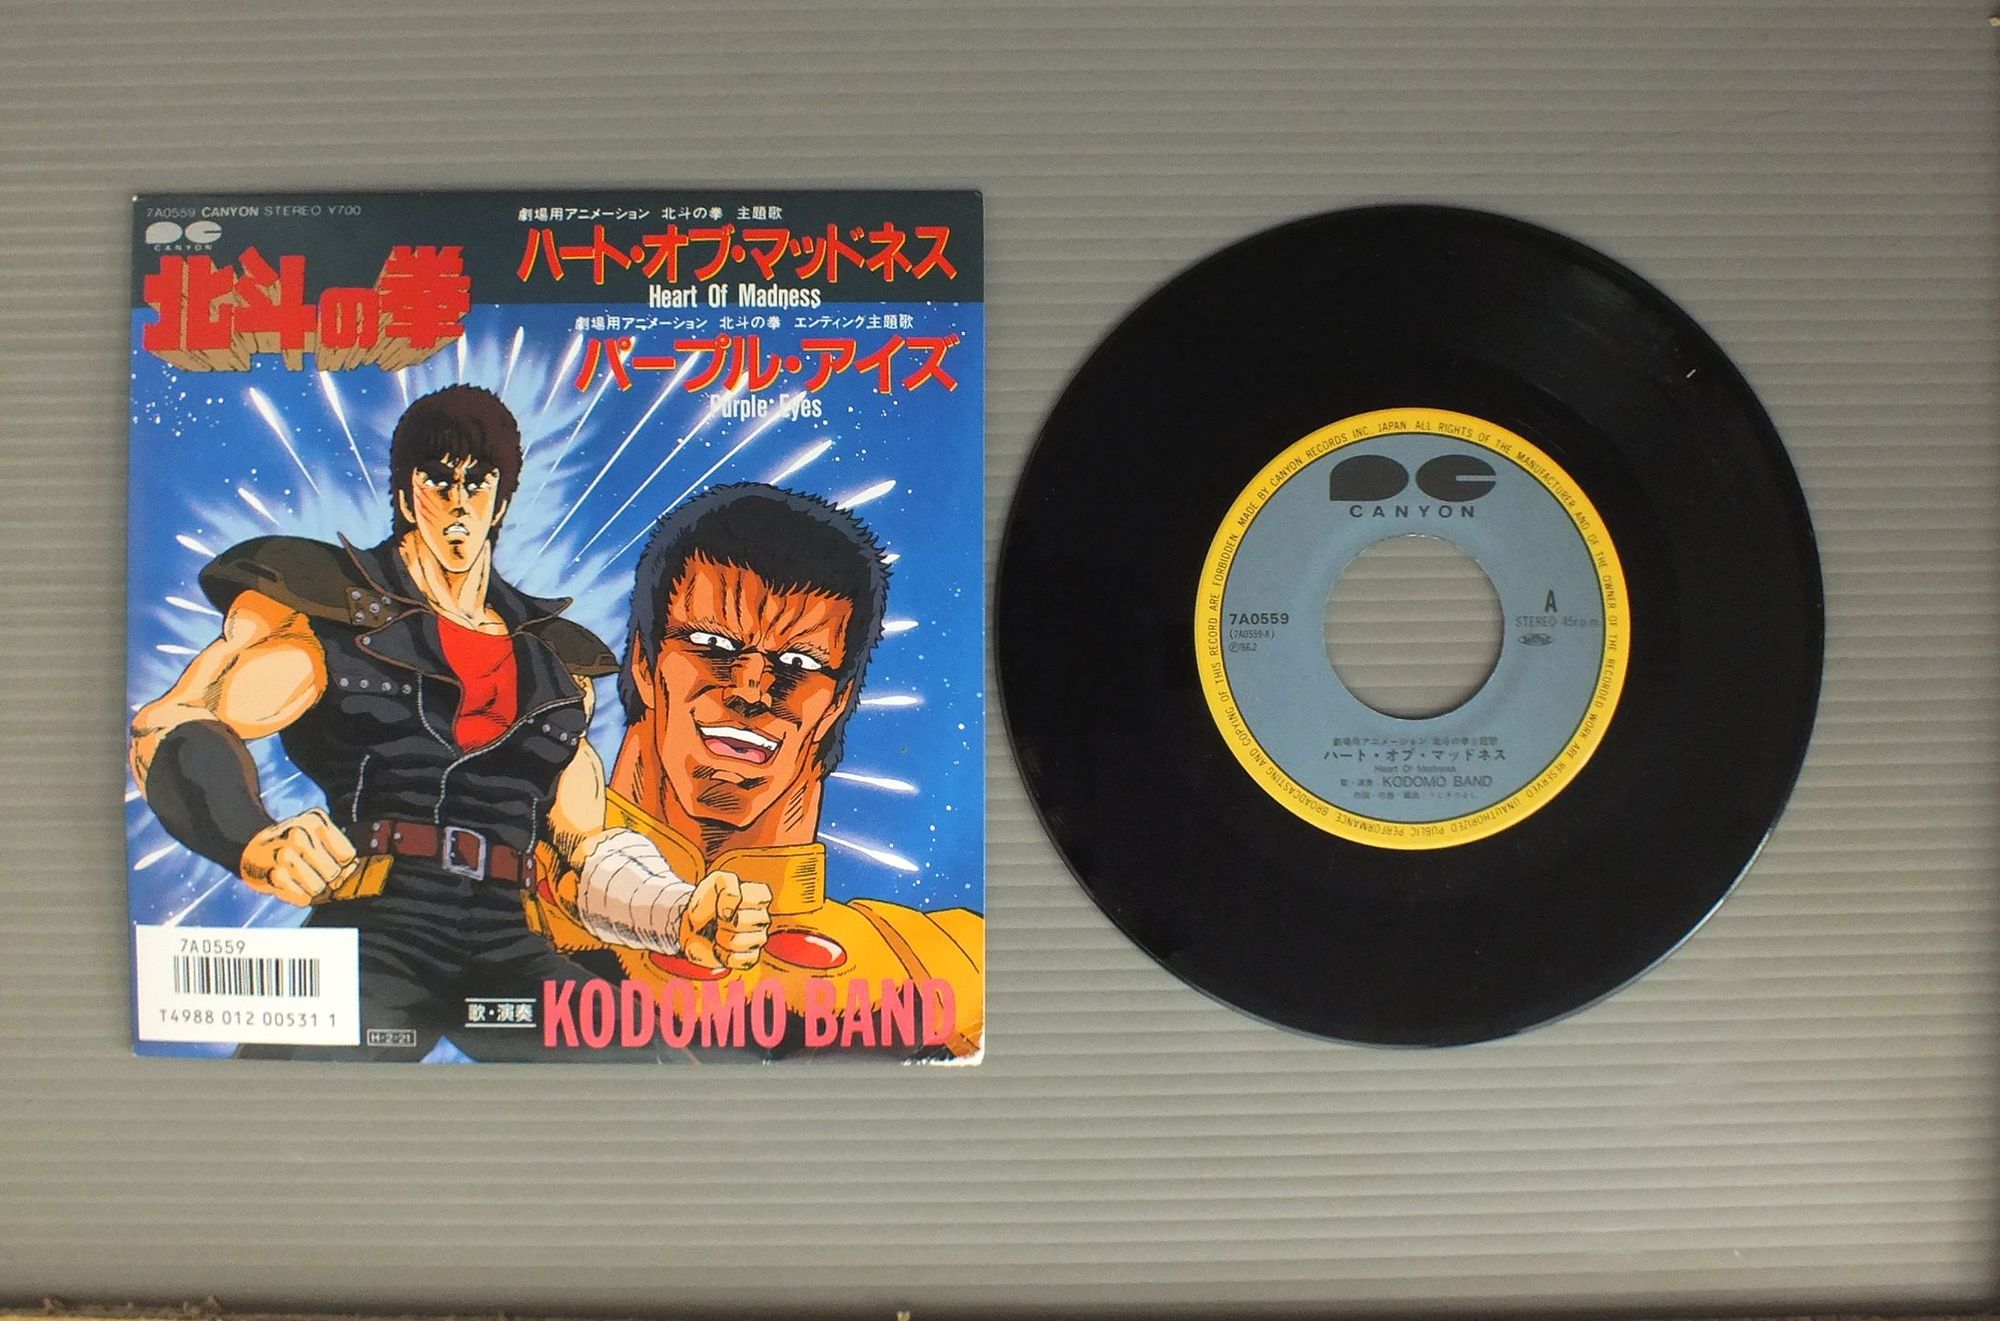 ANIME FIST OF THE NORTH STAR - MAIN THEME ( HEART OF MADNESS ) - 45T x 1